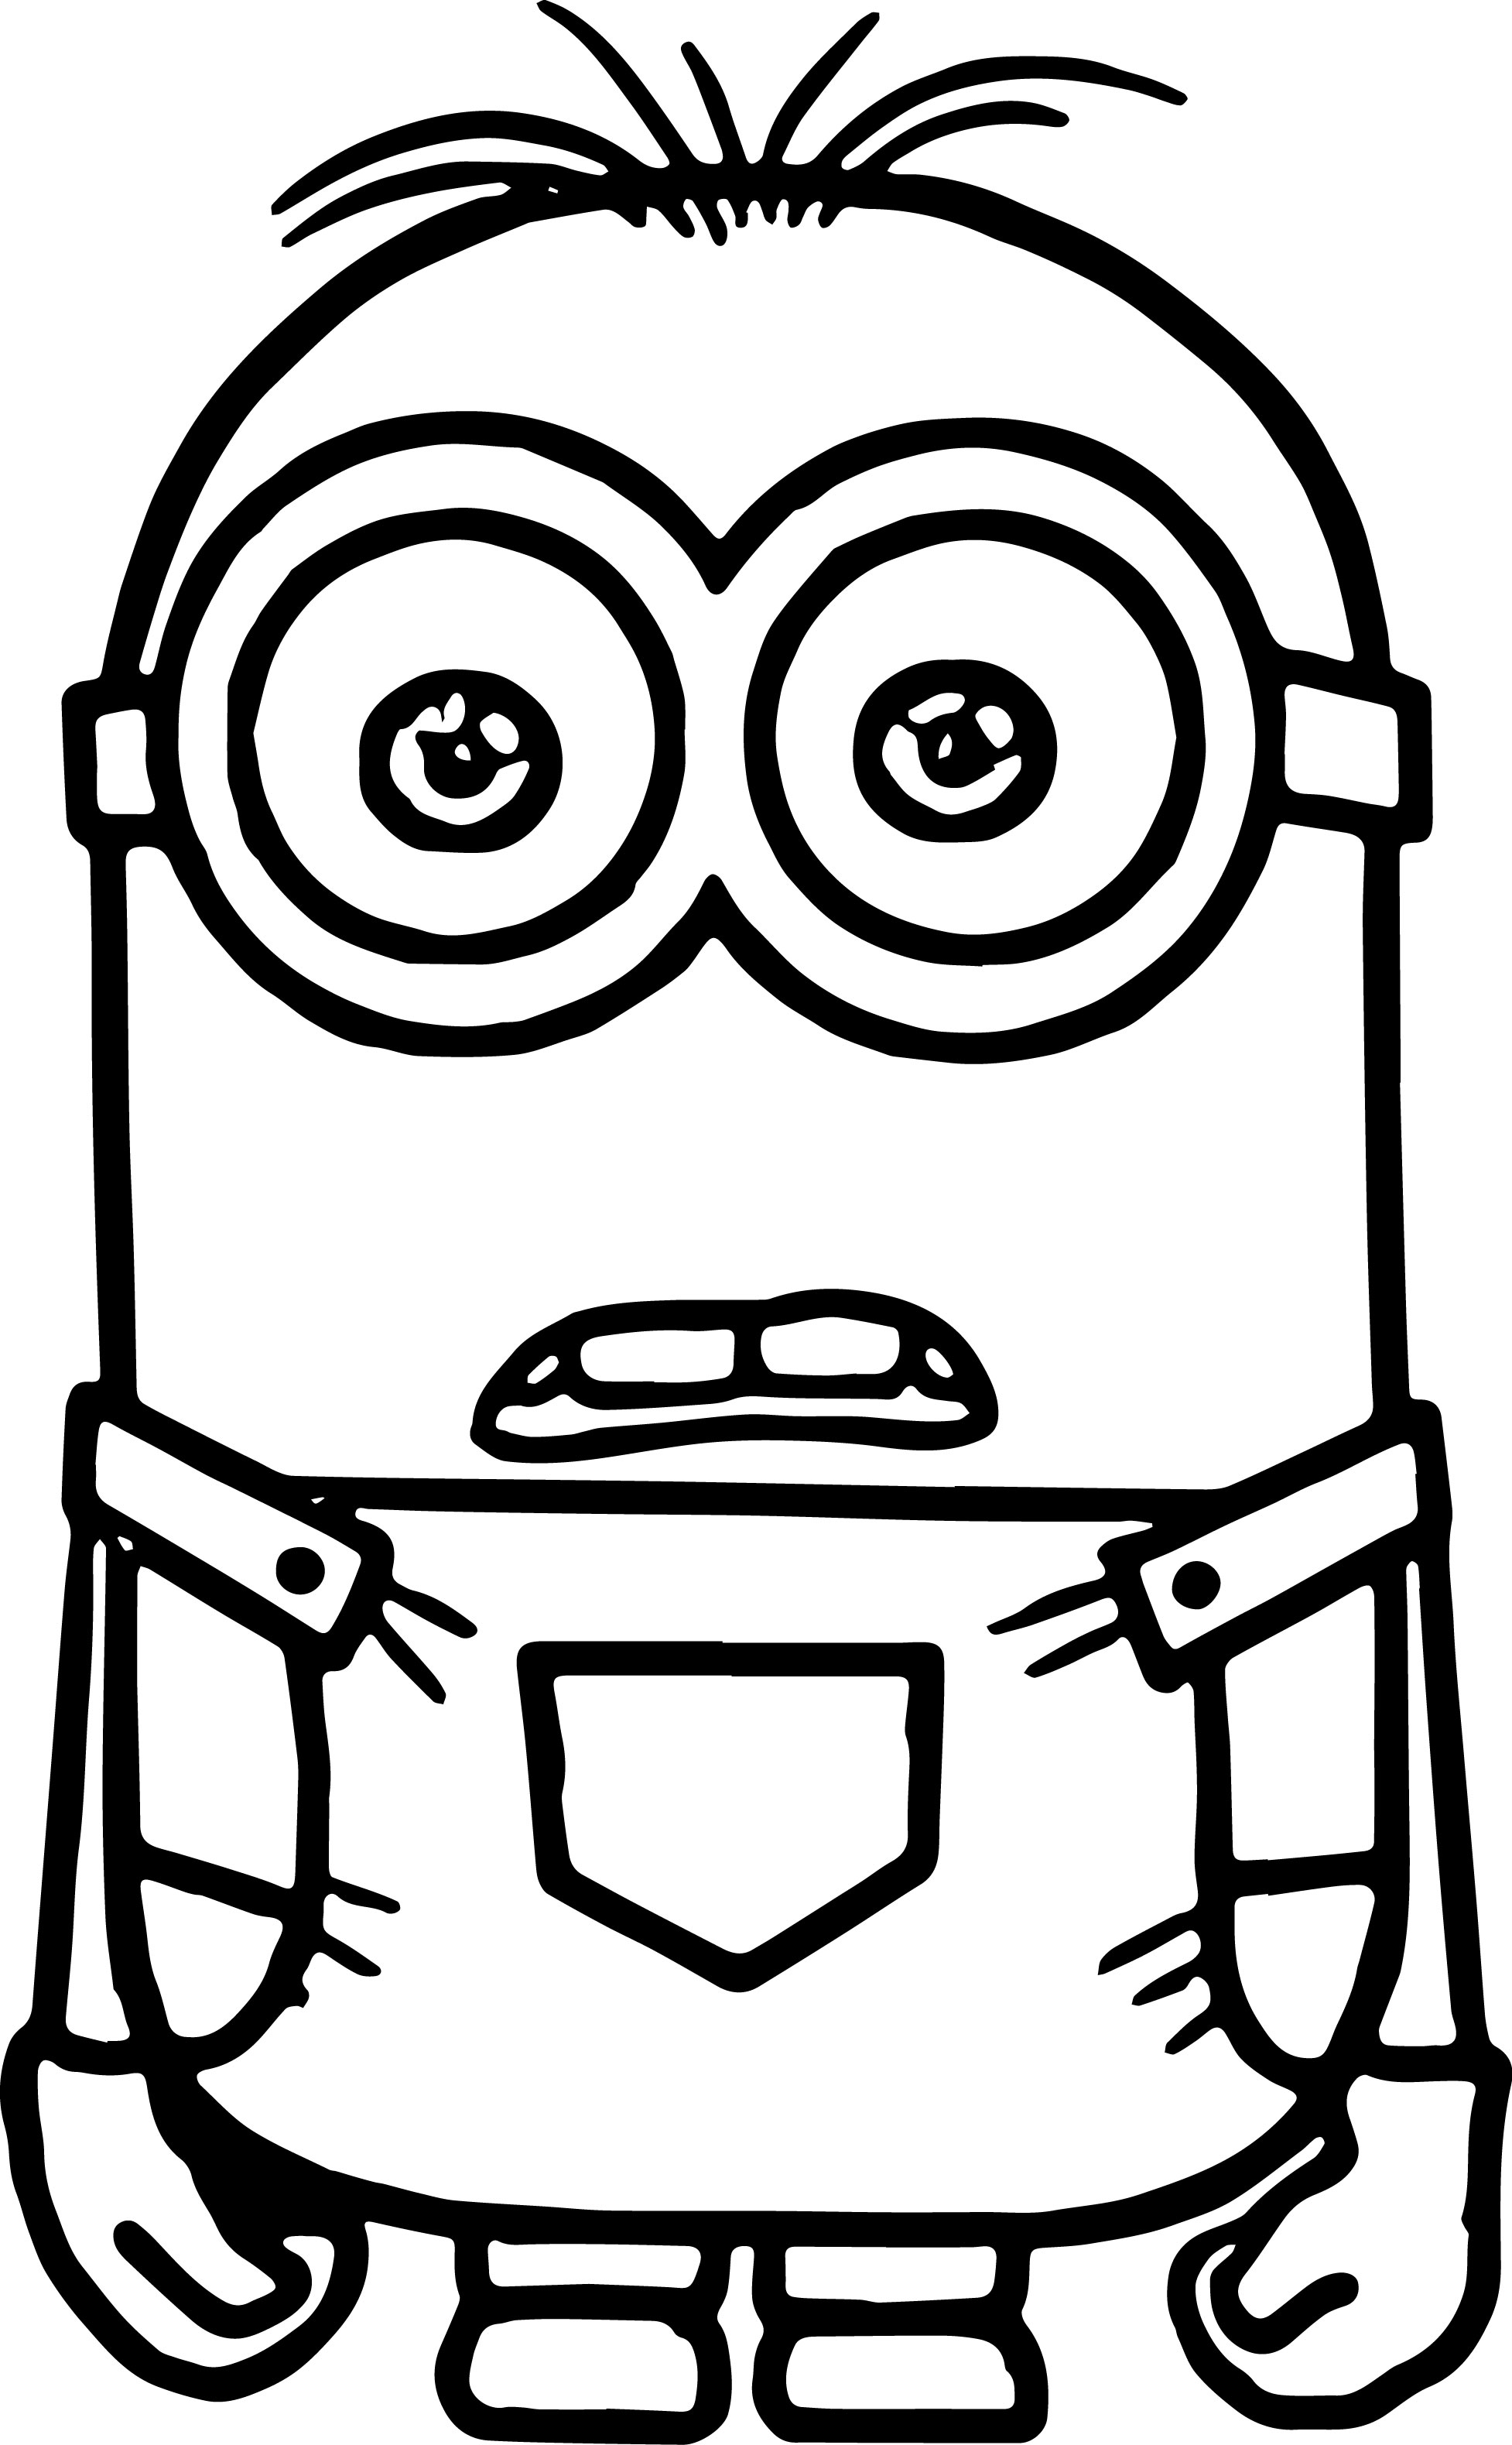 coloring kids clipart minion coloring pages fotolipcom rich image and wallpaper kids coloring clipart